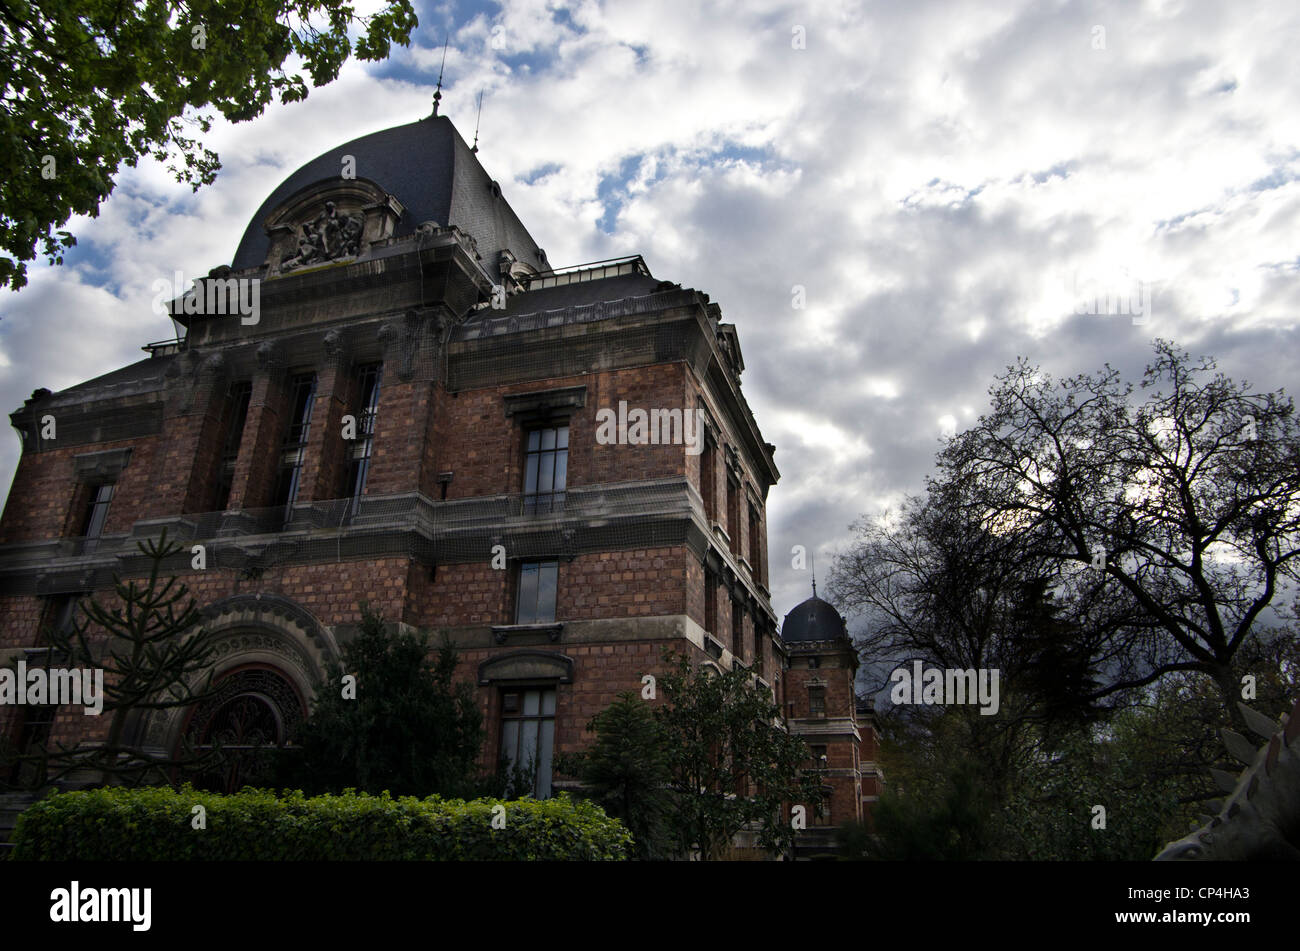 Museum of natural history of Paris. Outside building. - Stock Image